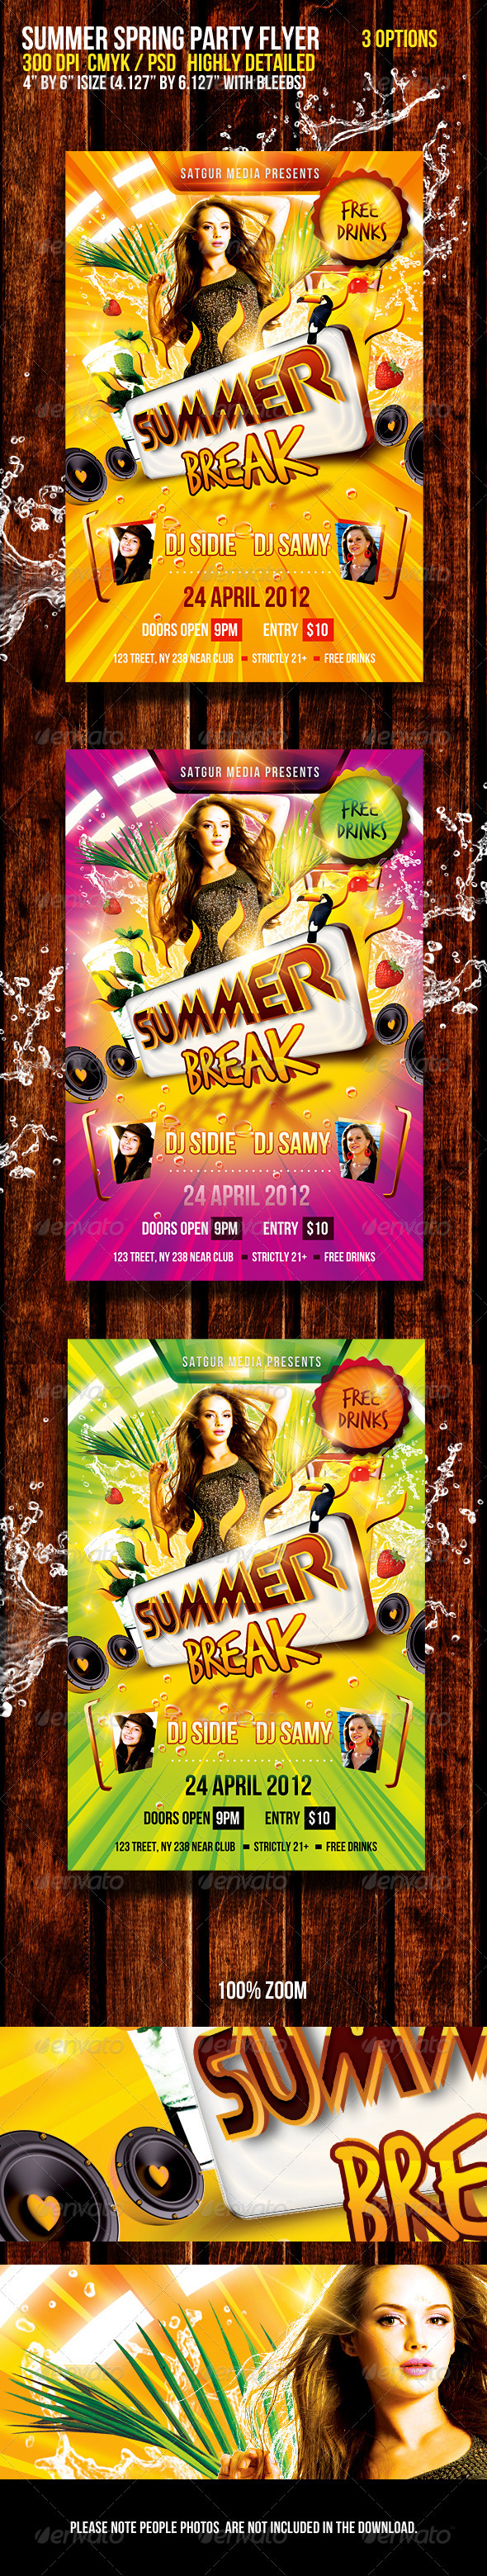 Summer Spring Break Music Dance Party Flyer - Flyers Print Templates